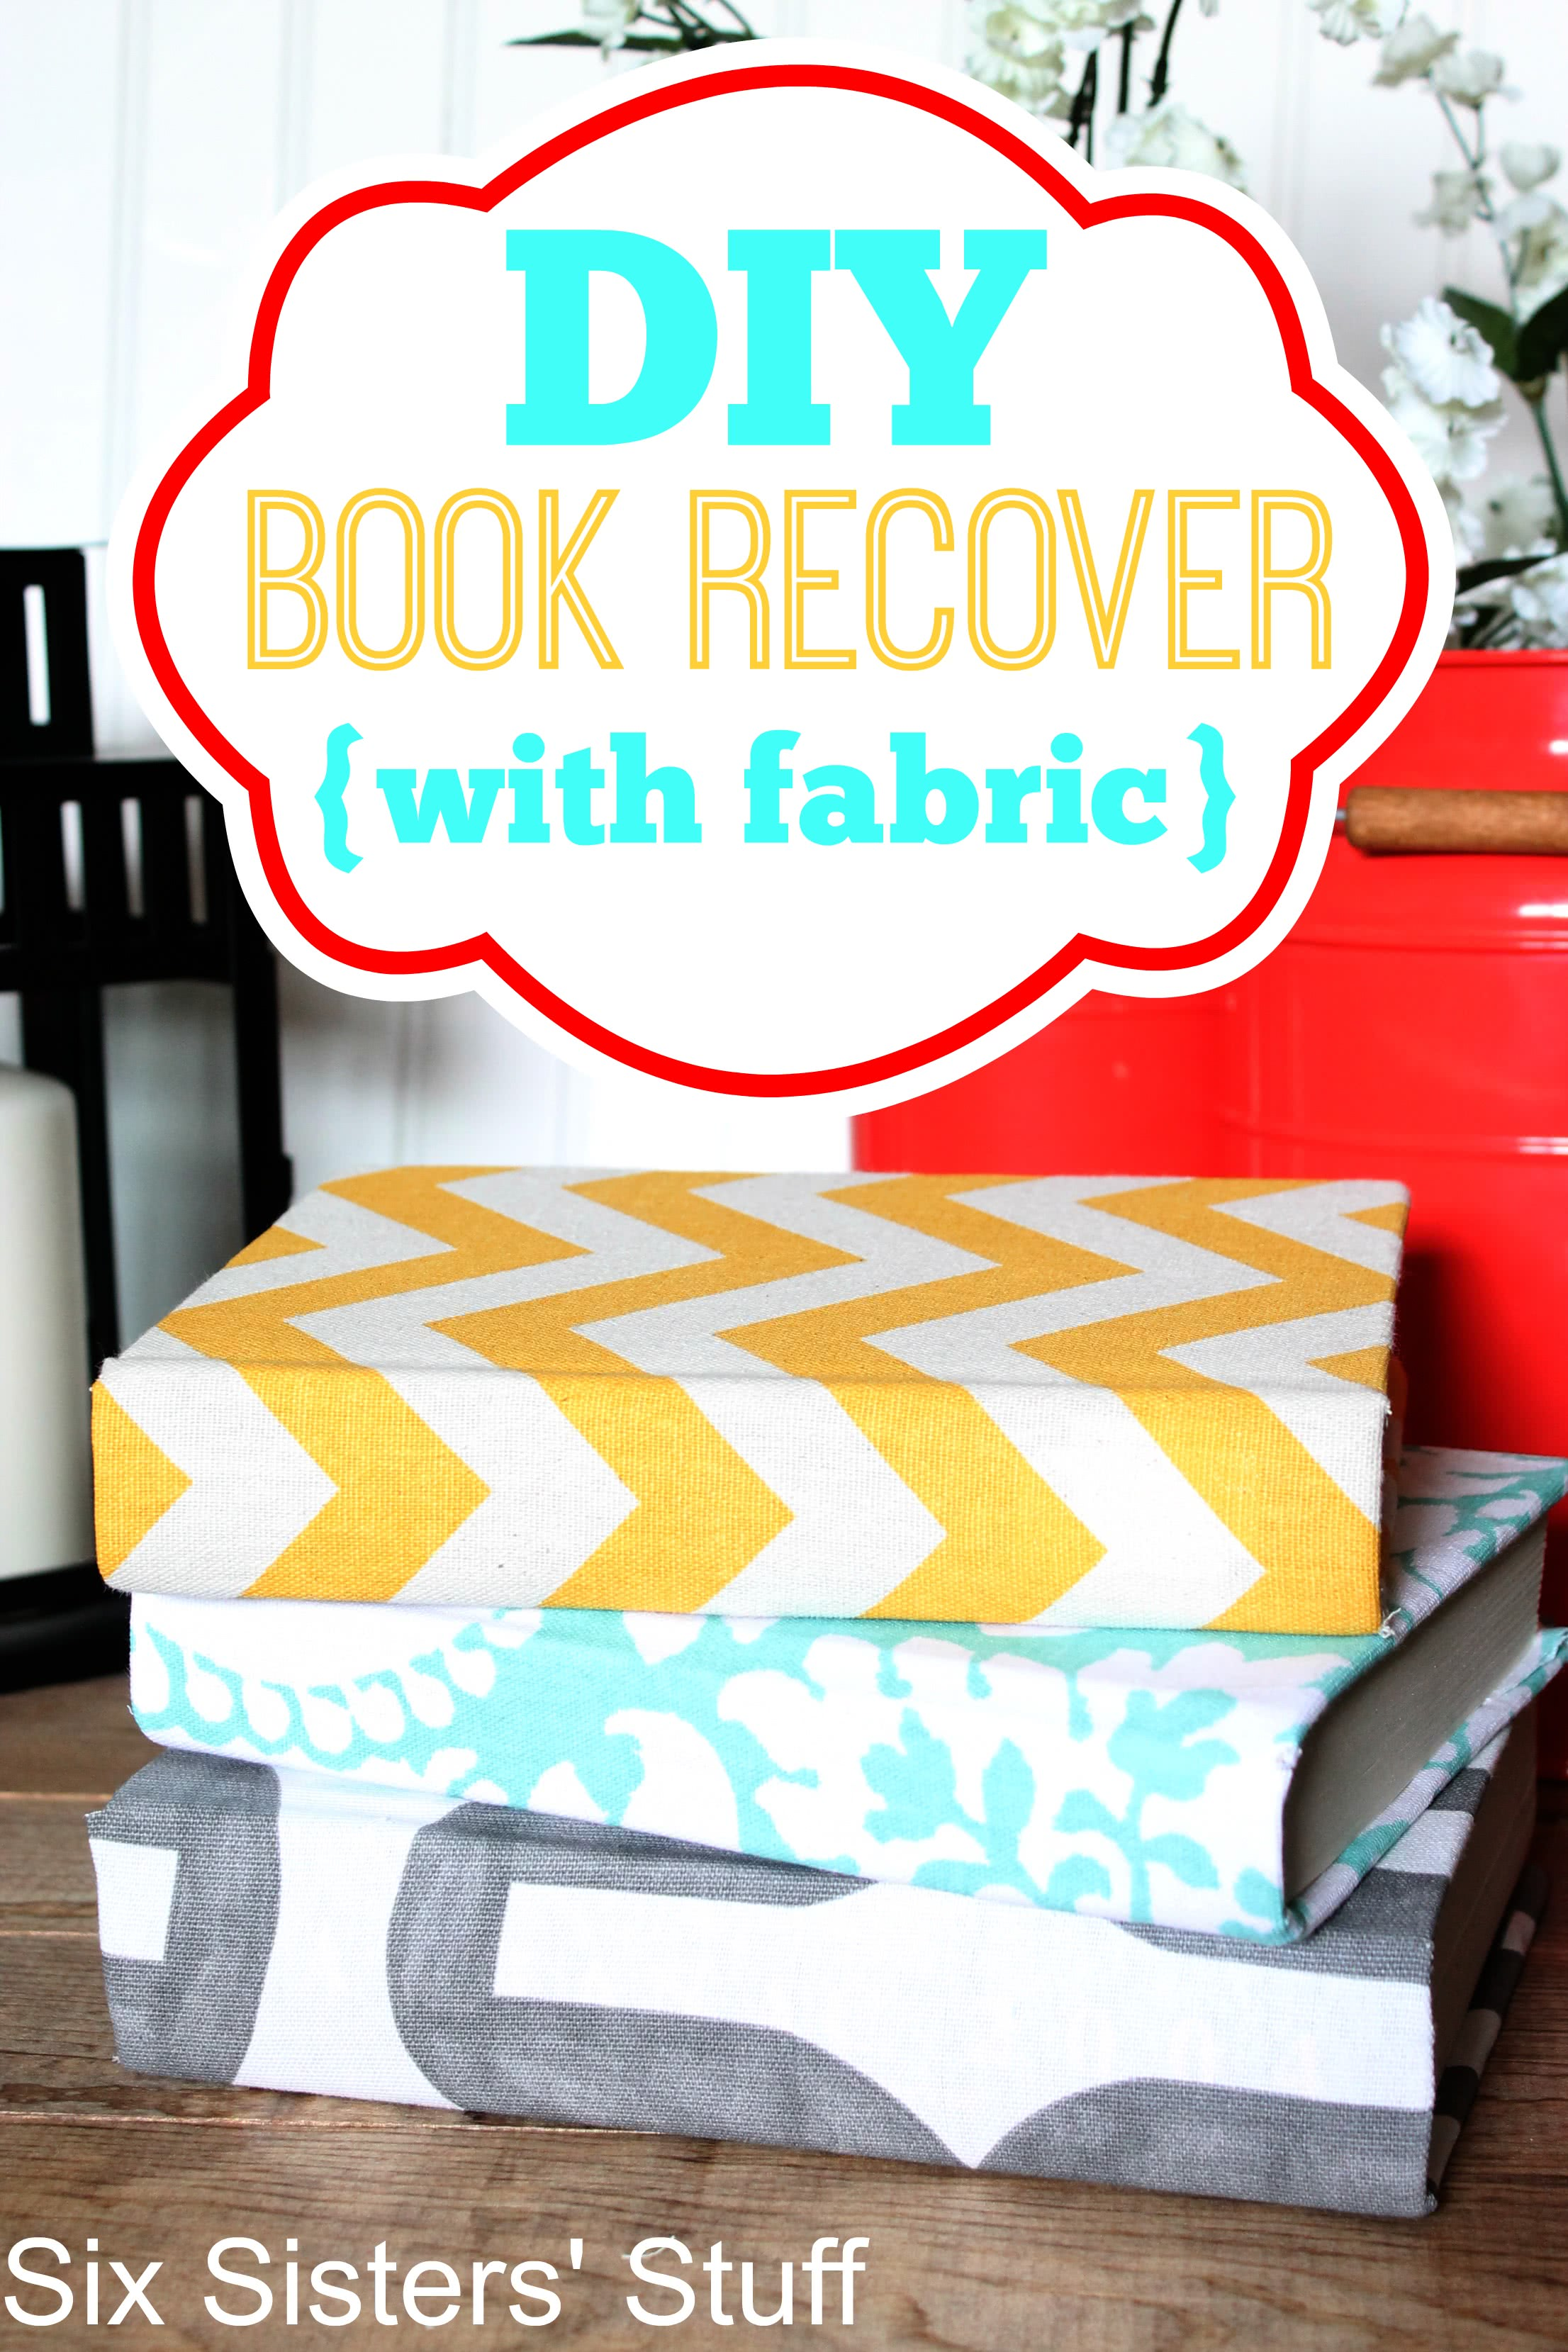 DIY Book Recover with Fabric